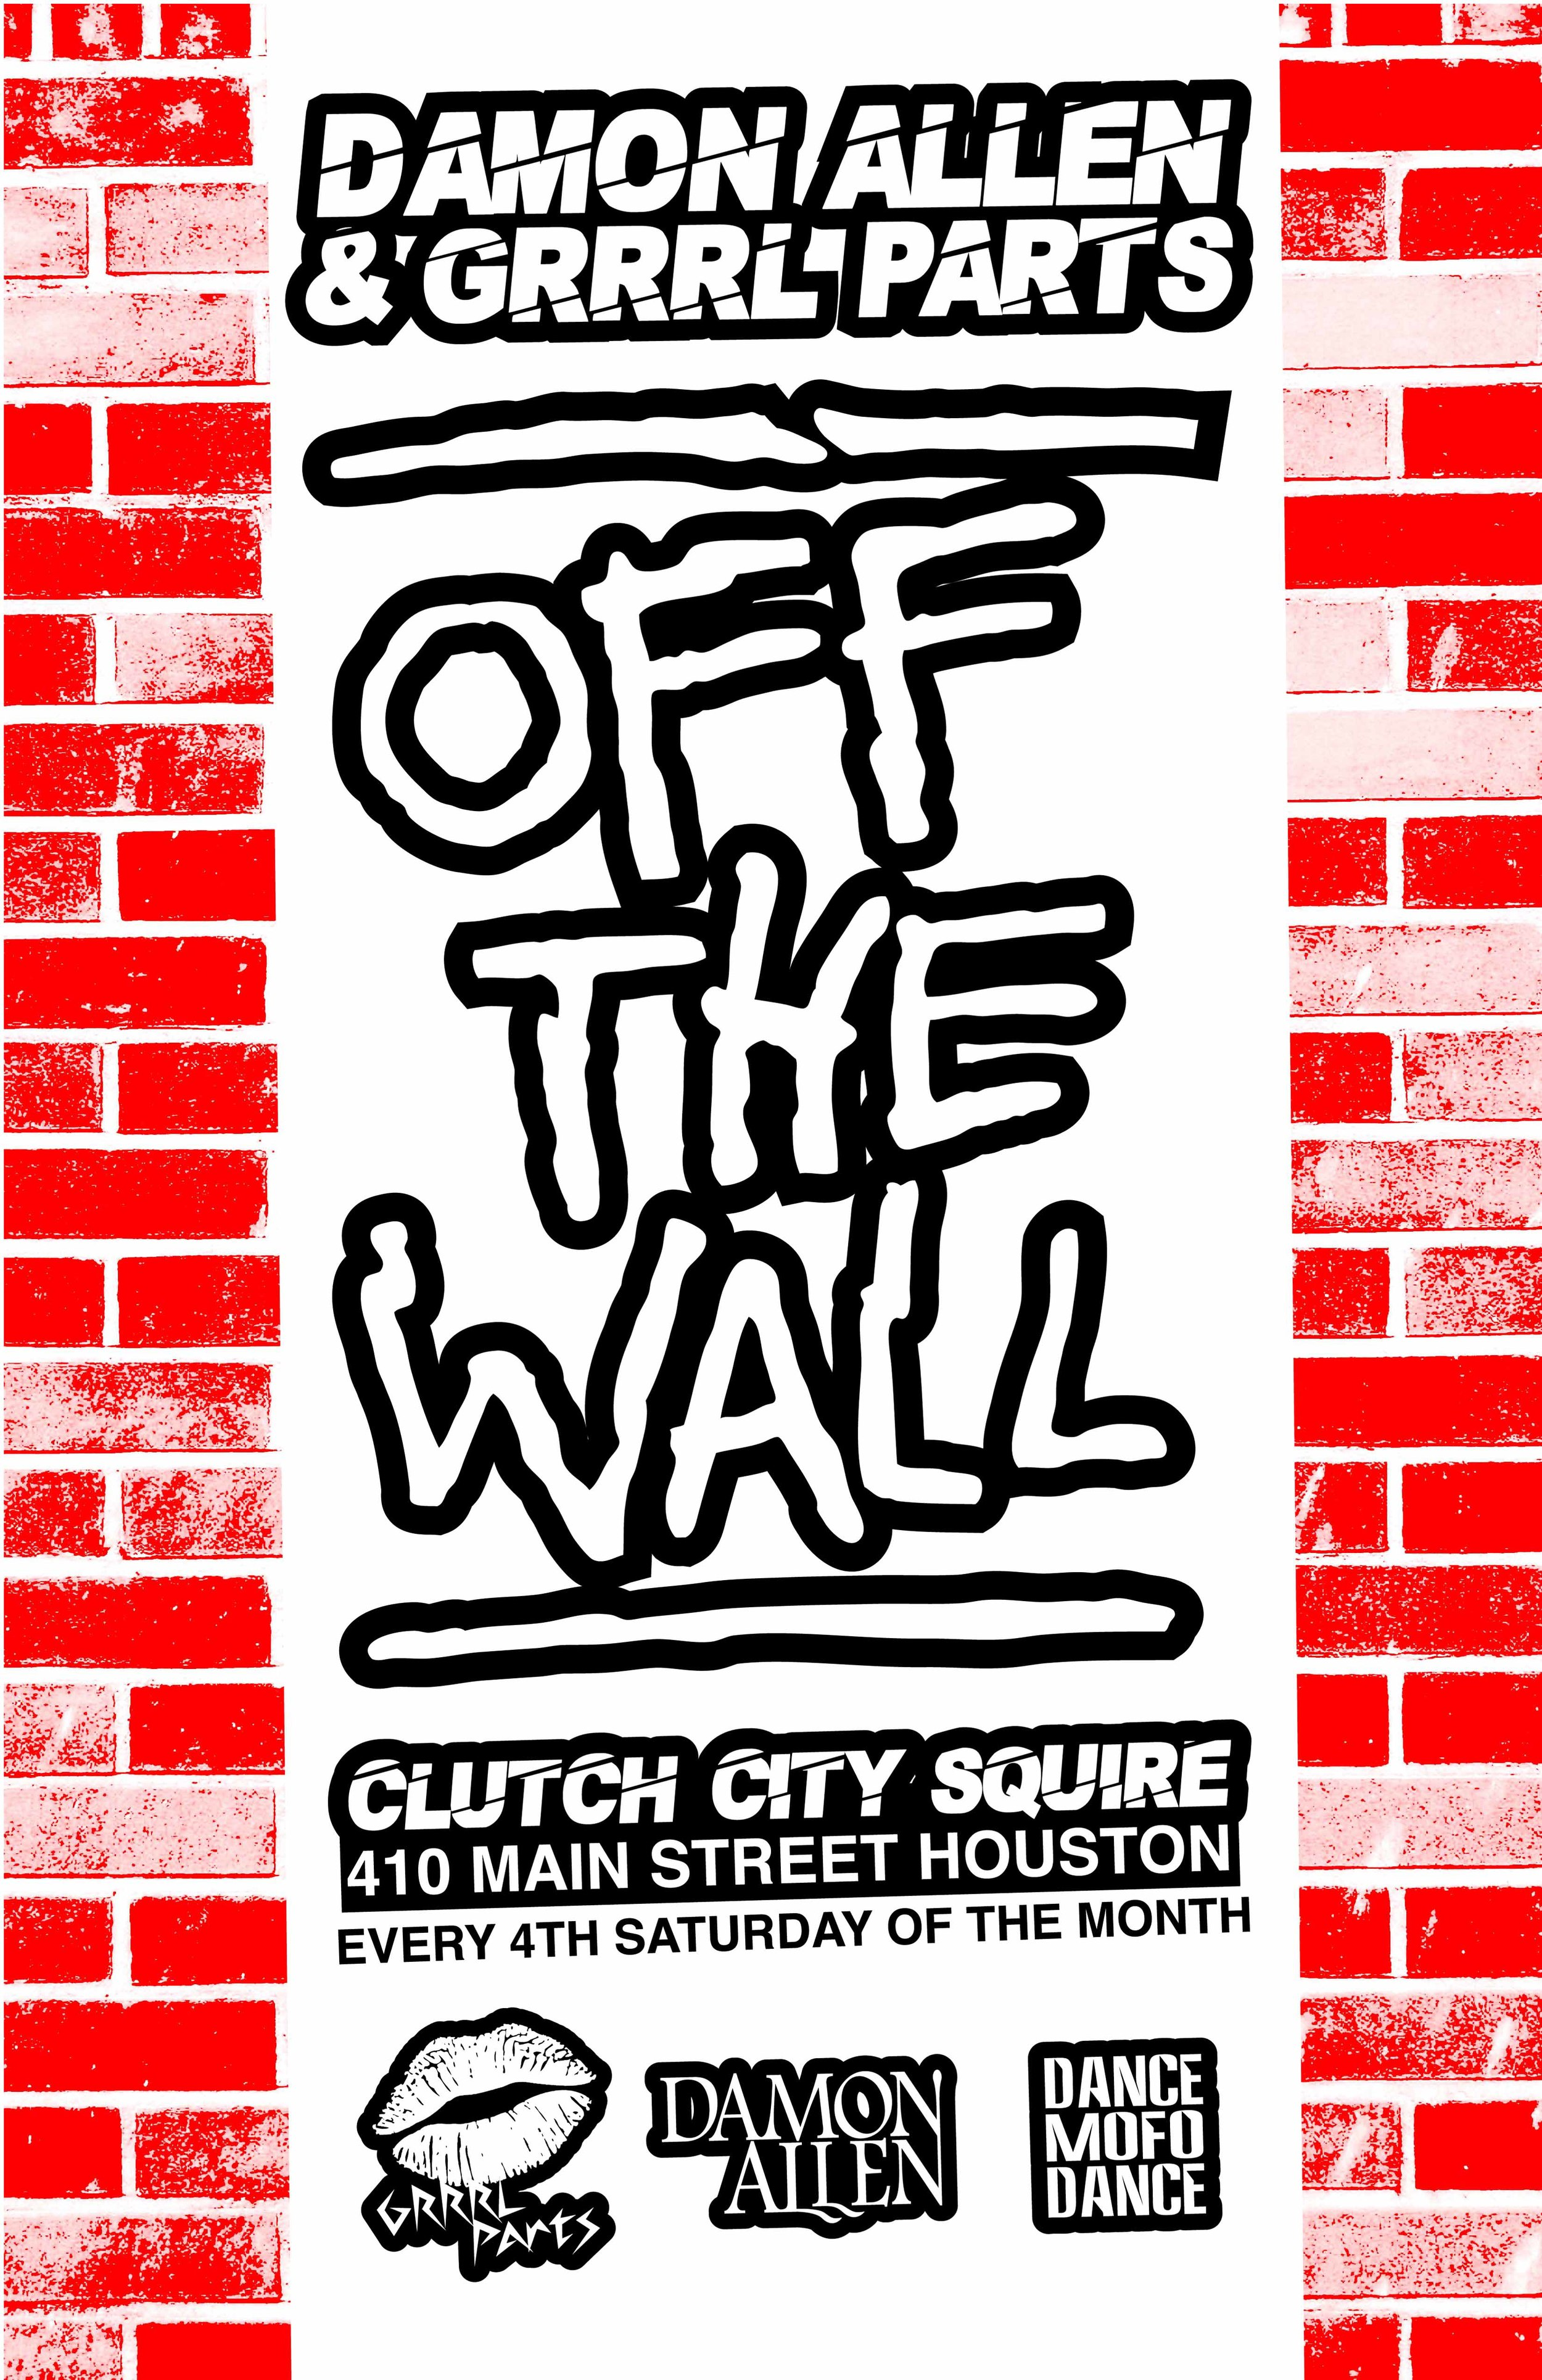 off_the_wall_11x17.jpg